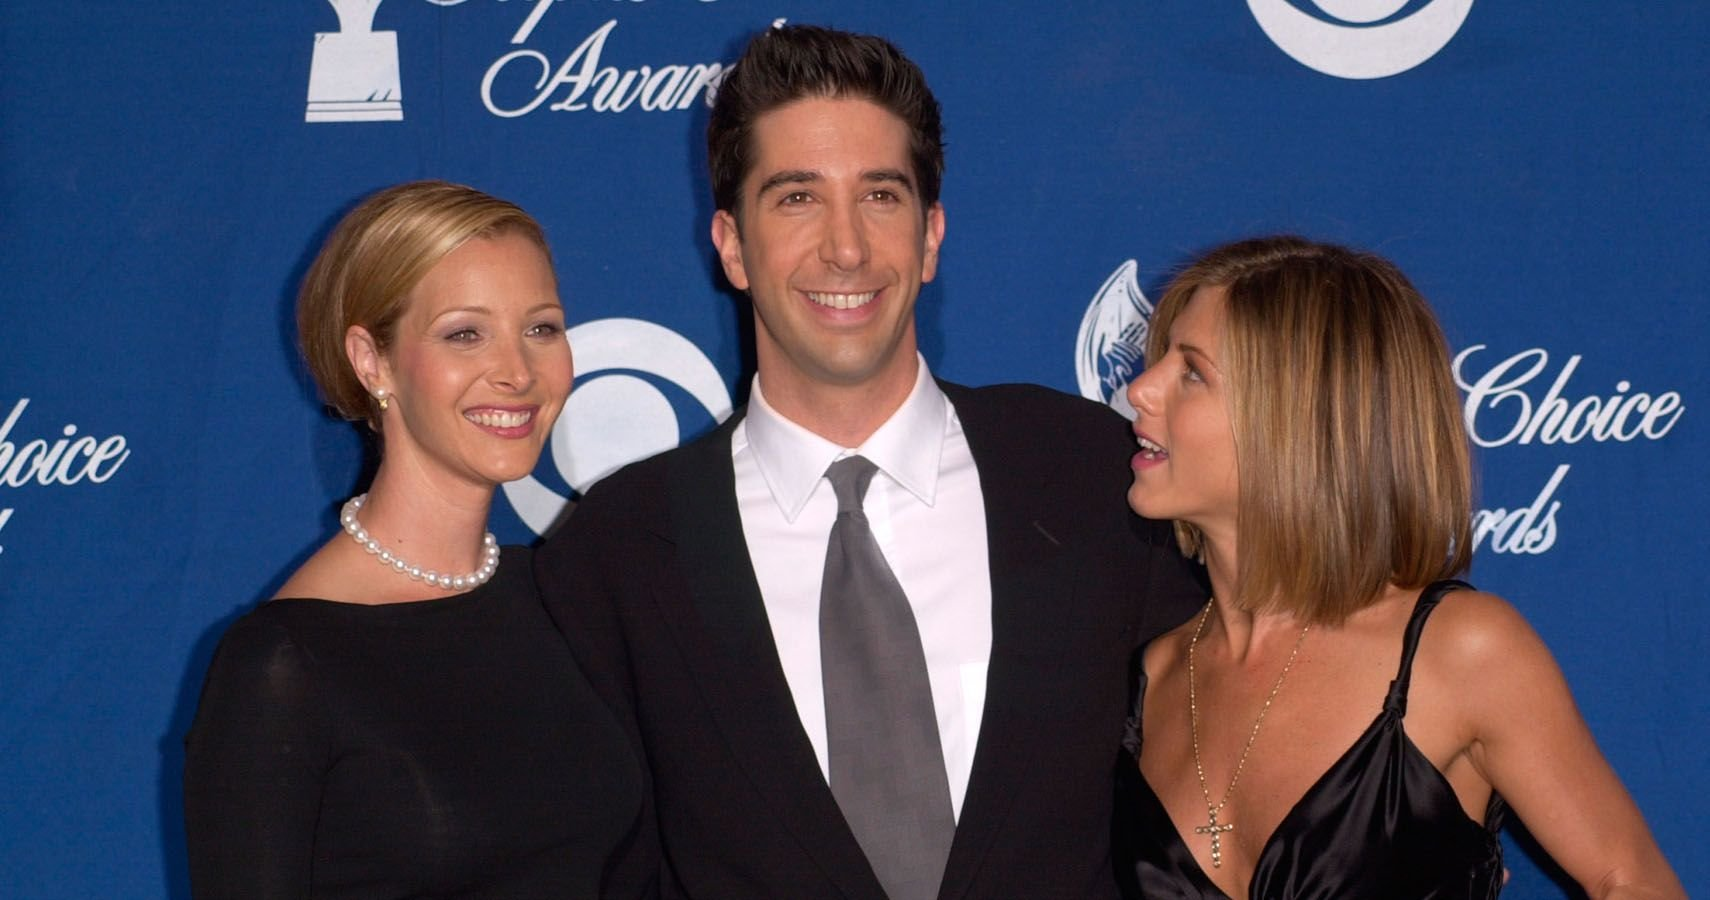 From Ross To Boss: How David Schwimmer Grew $100 Million - cover